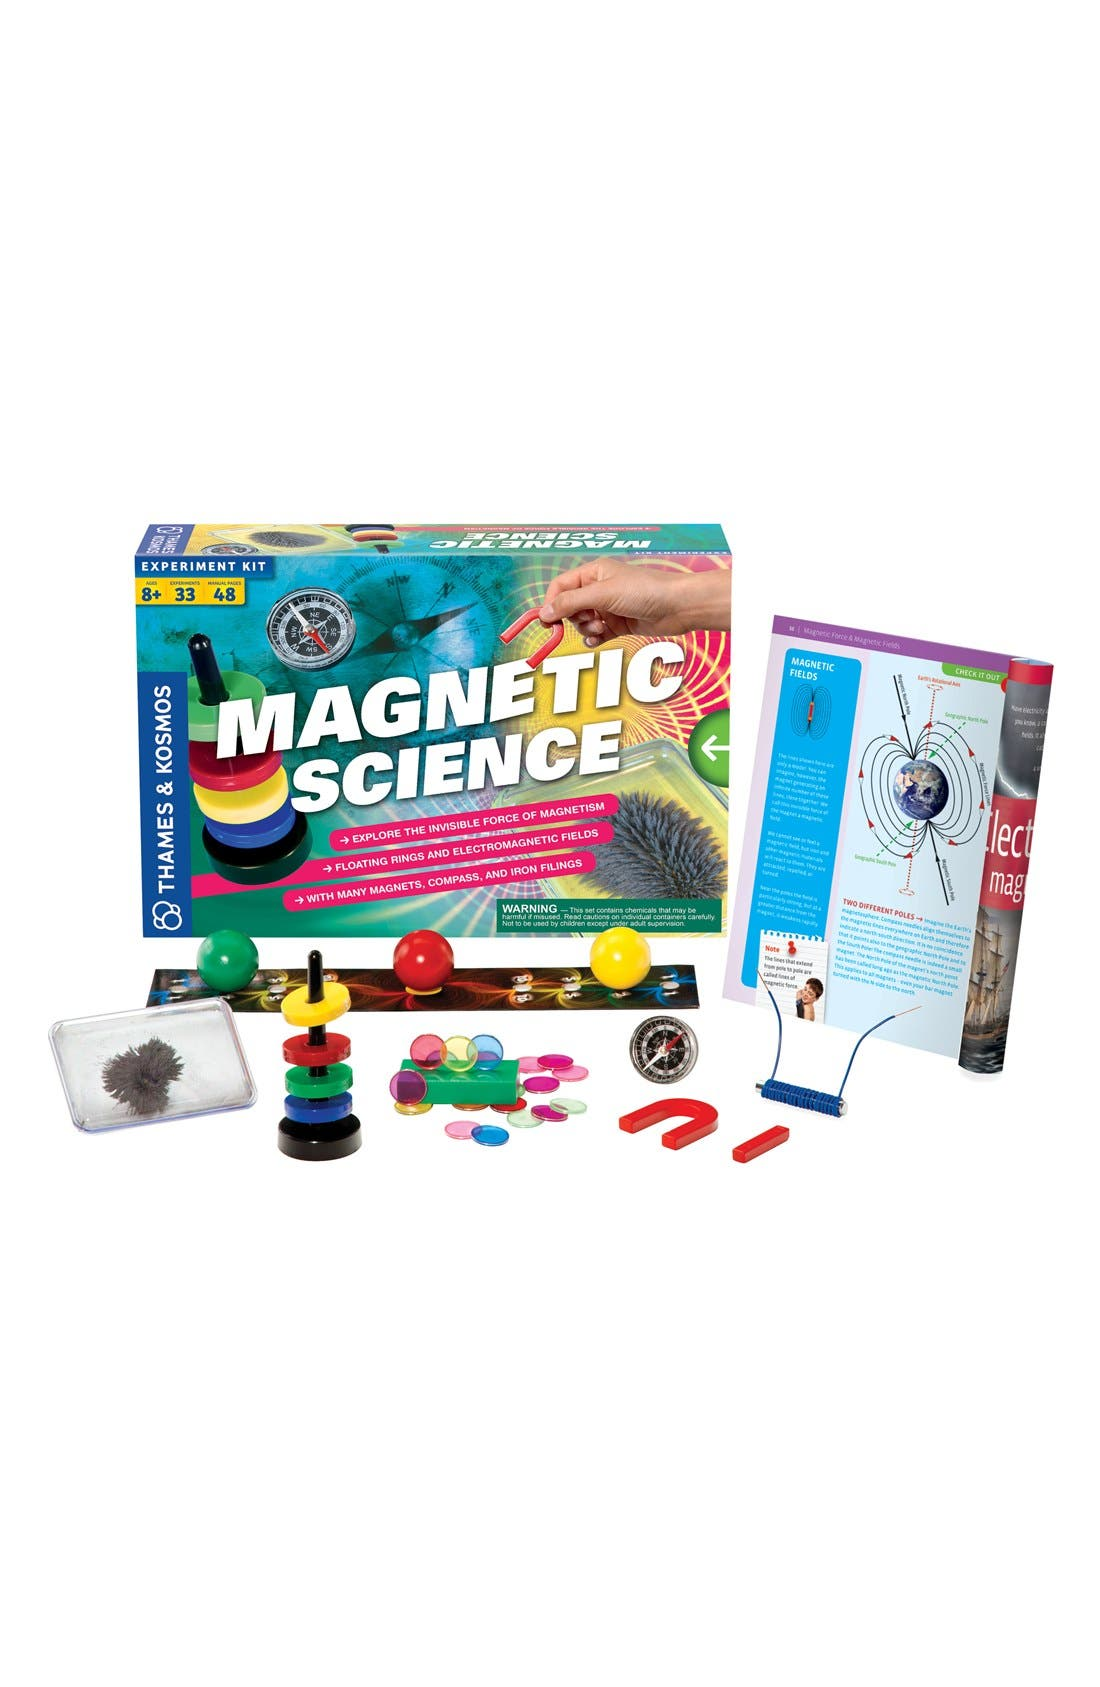 'Magnetic Science' Experiment Kit,                             Main thumbnail 1, color,                             000